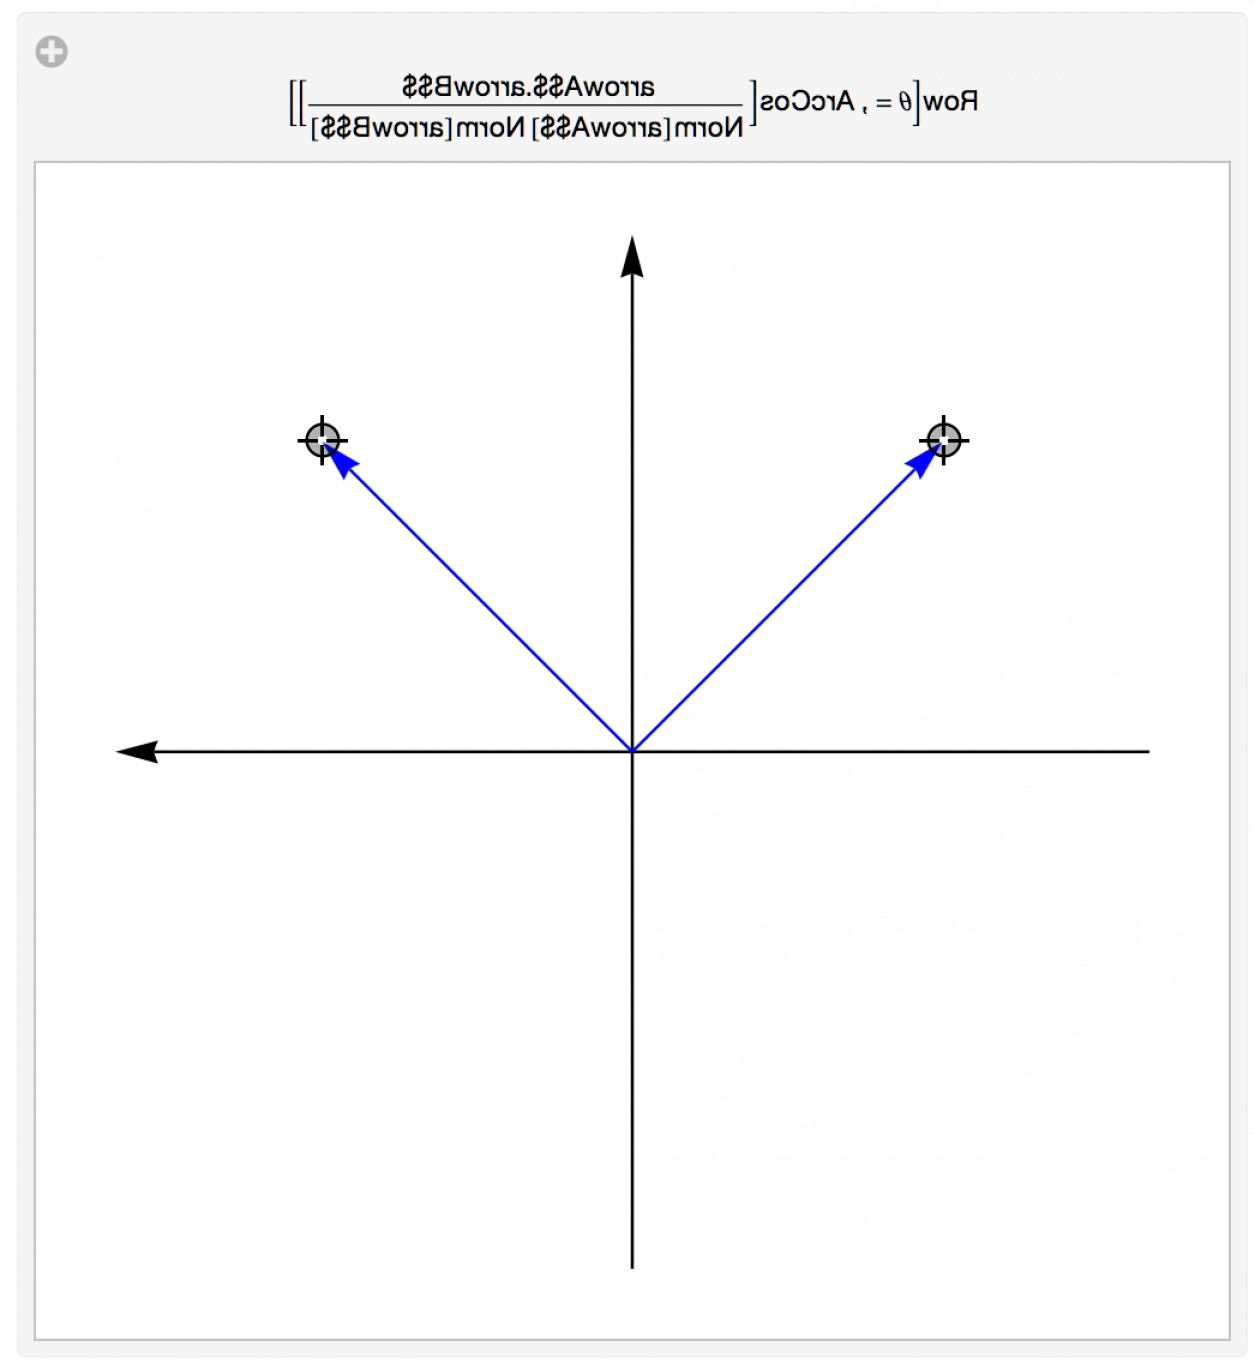 Vector Addition With Angles: Adding A Title That Includes Angle Between Two Vectors In Graphic In Manipulate